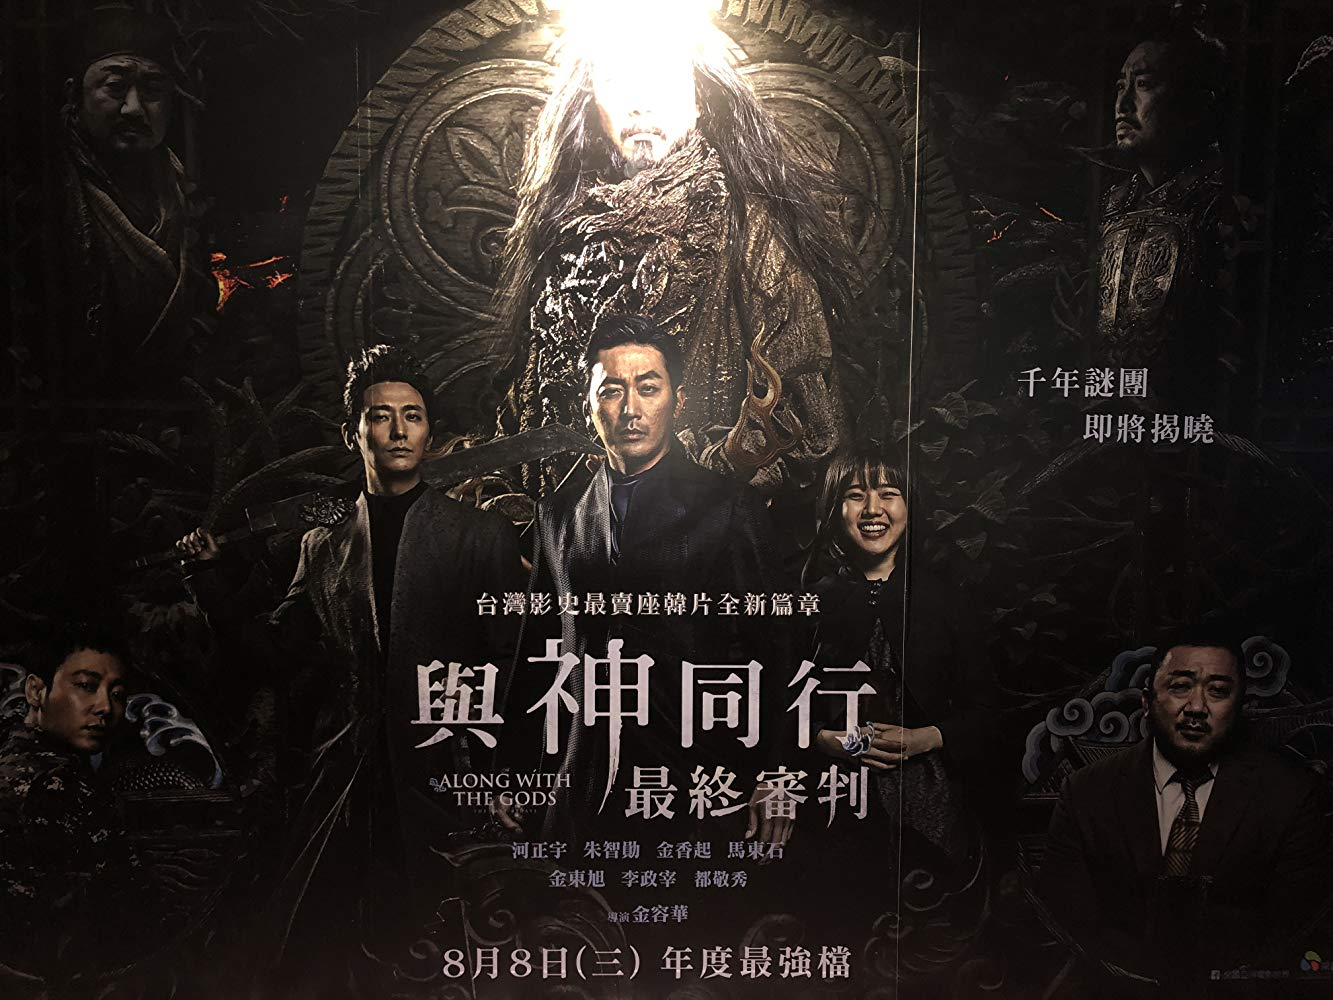 Along with the Gods: The Last 49 Days (2018) [Korean]